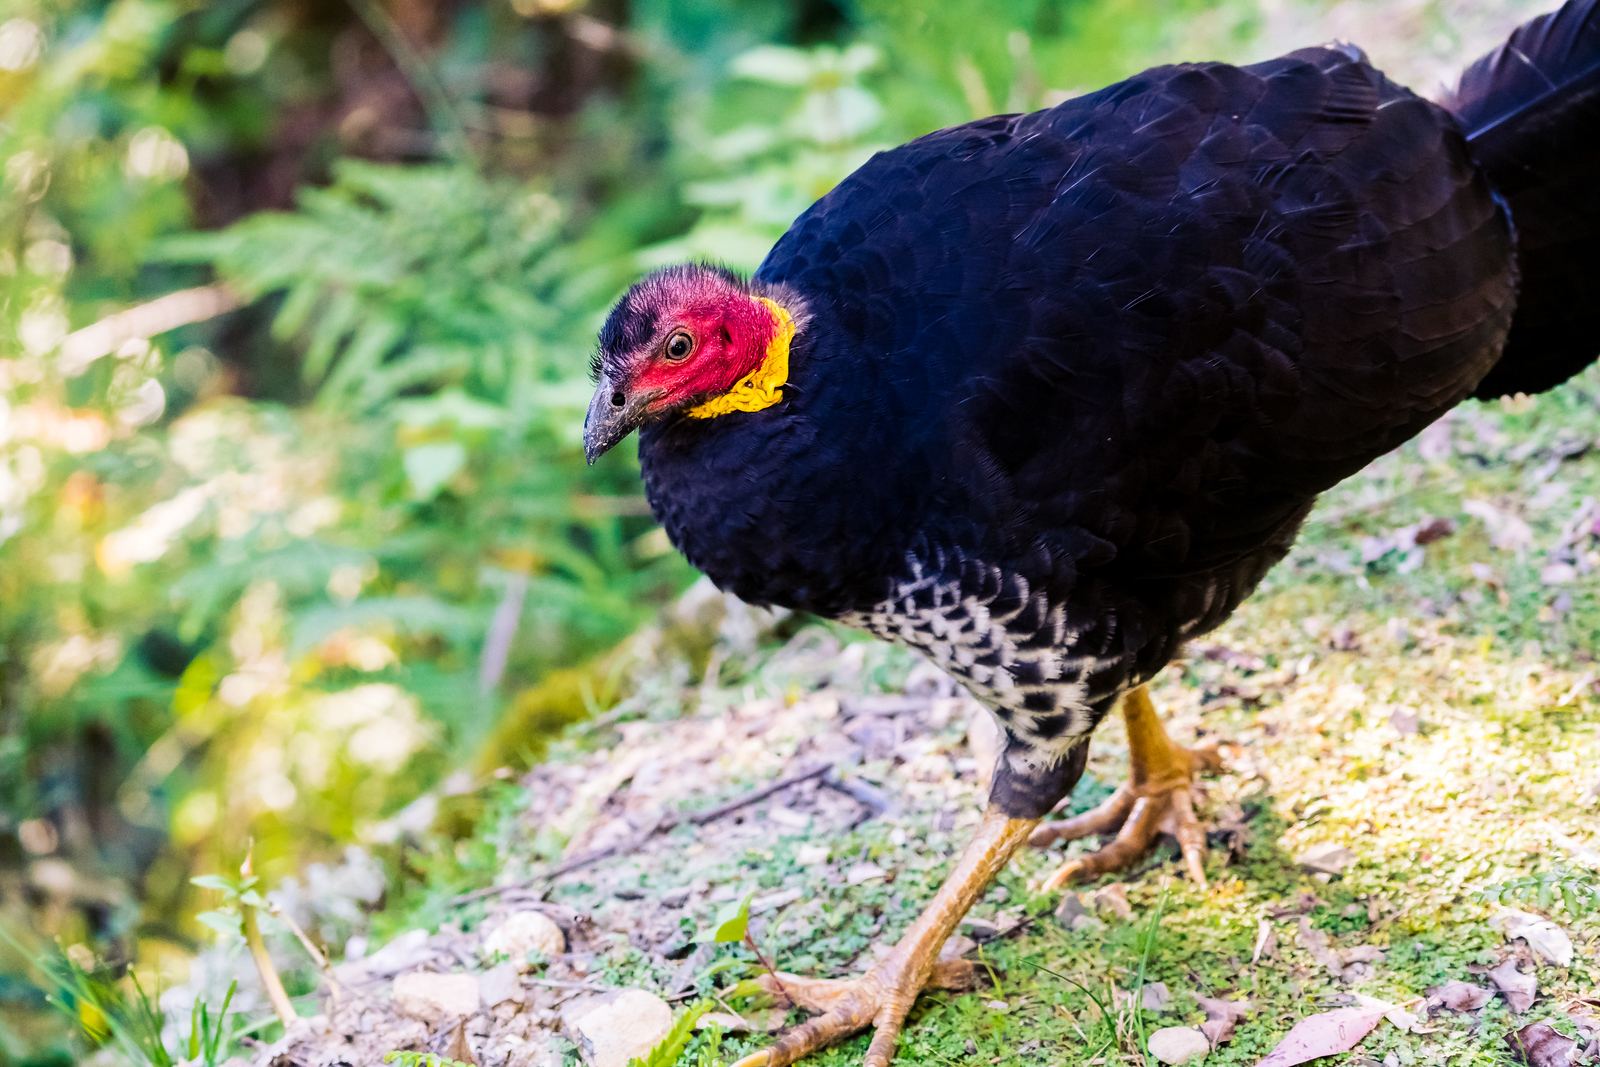 The Australian Brush Turkey